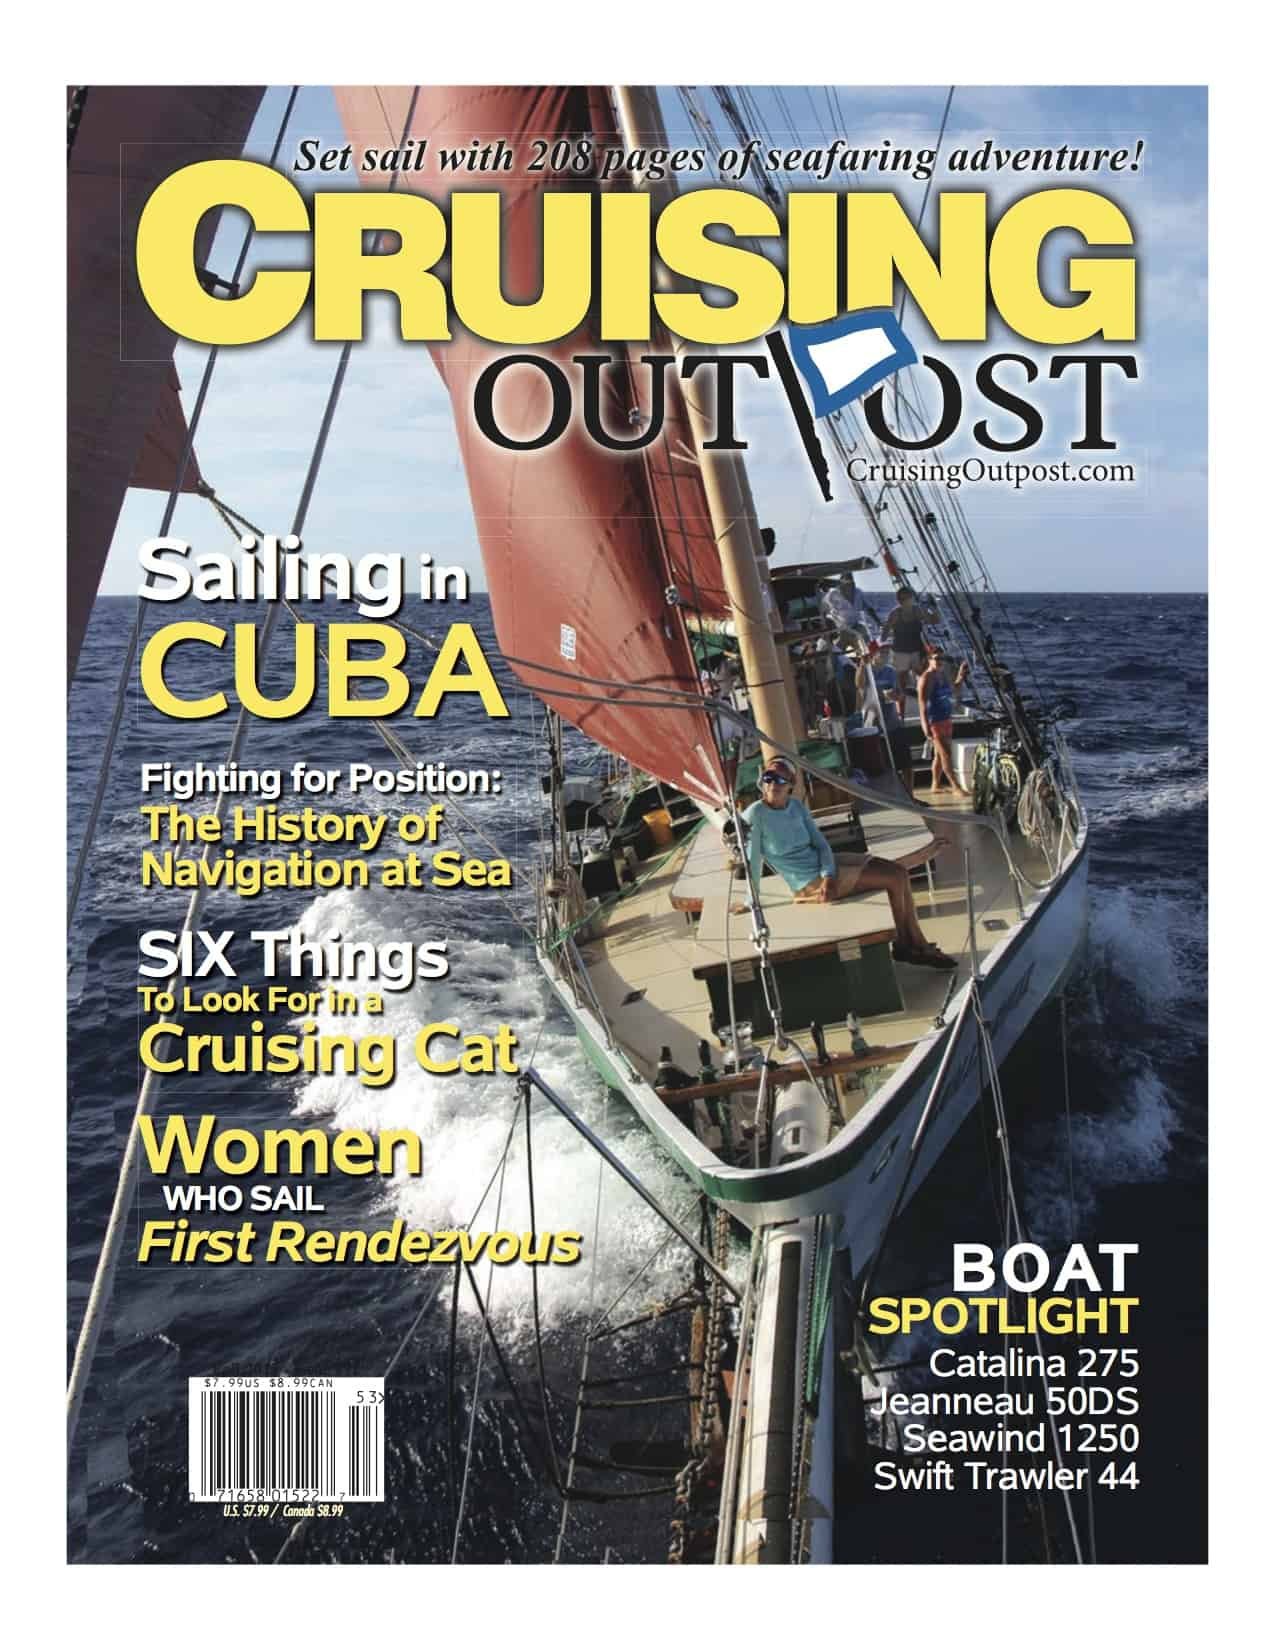 Cruising Outpost issue 12 includes article by catamaran guru about how to pick a cruising catamaran